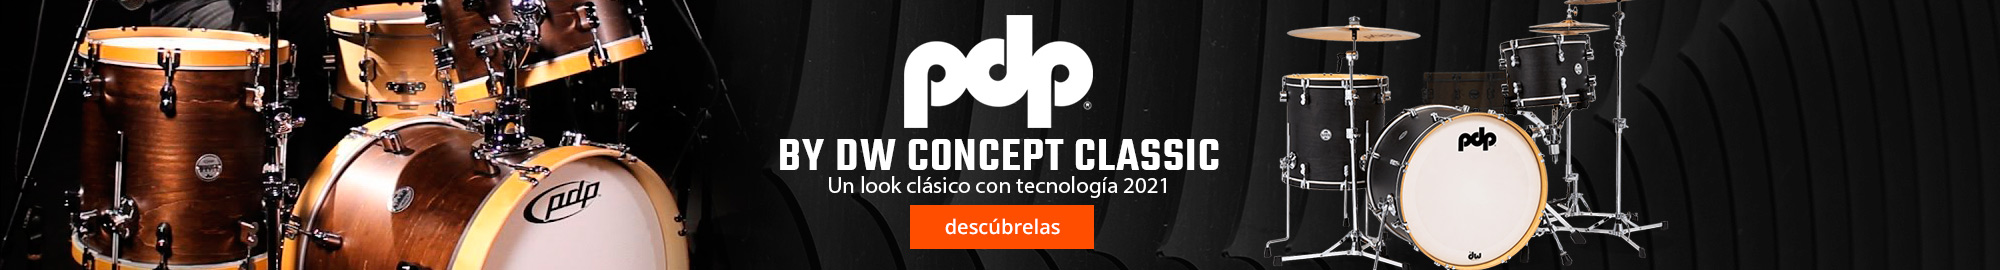 PDP by DW Concept Classic